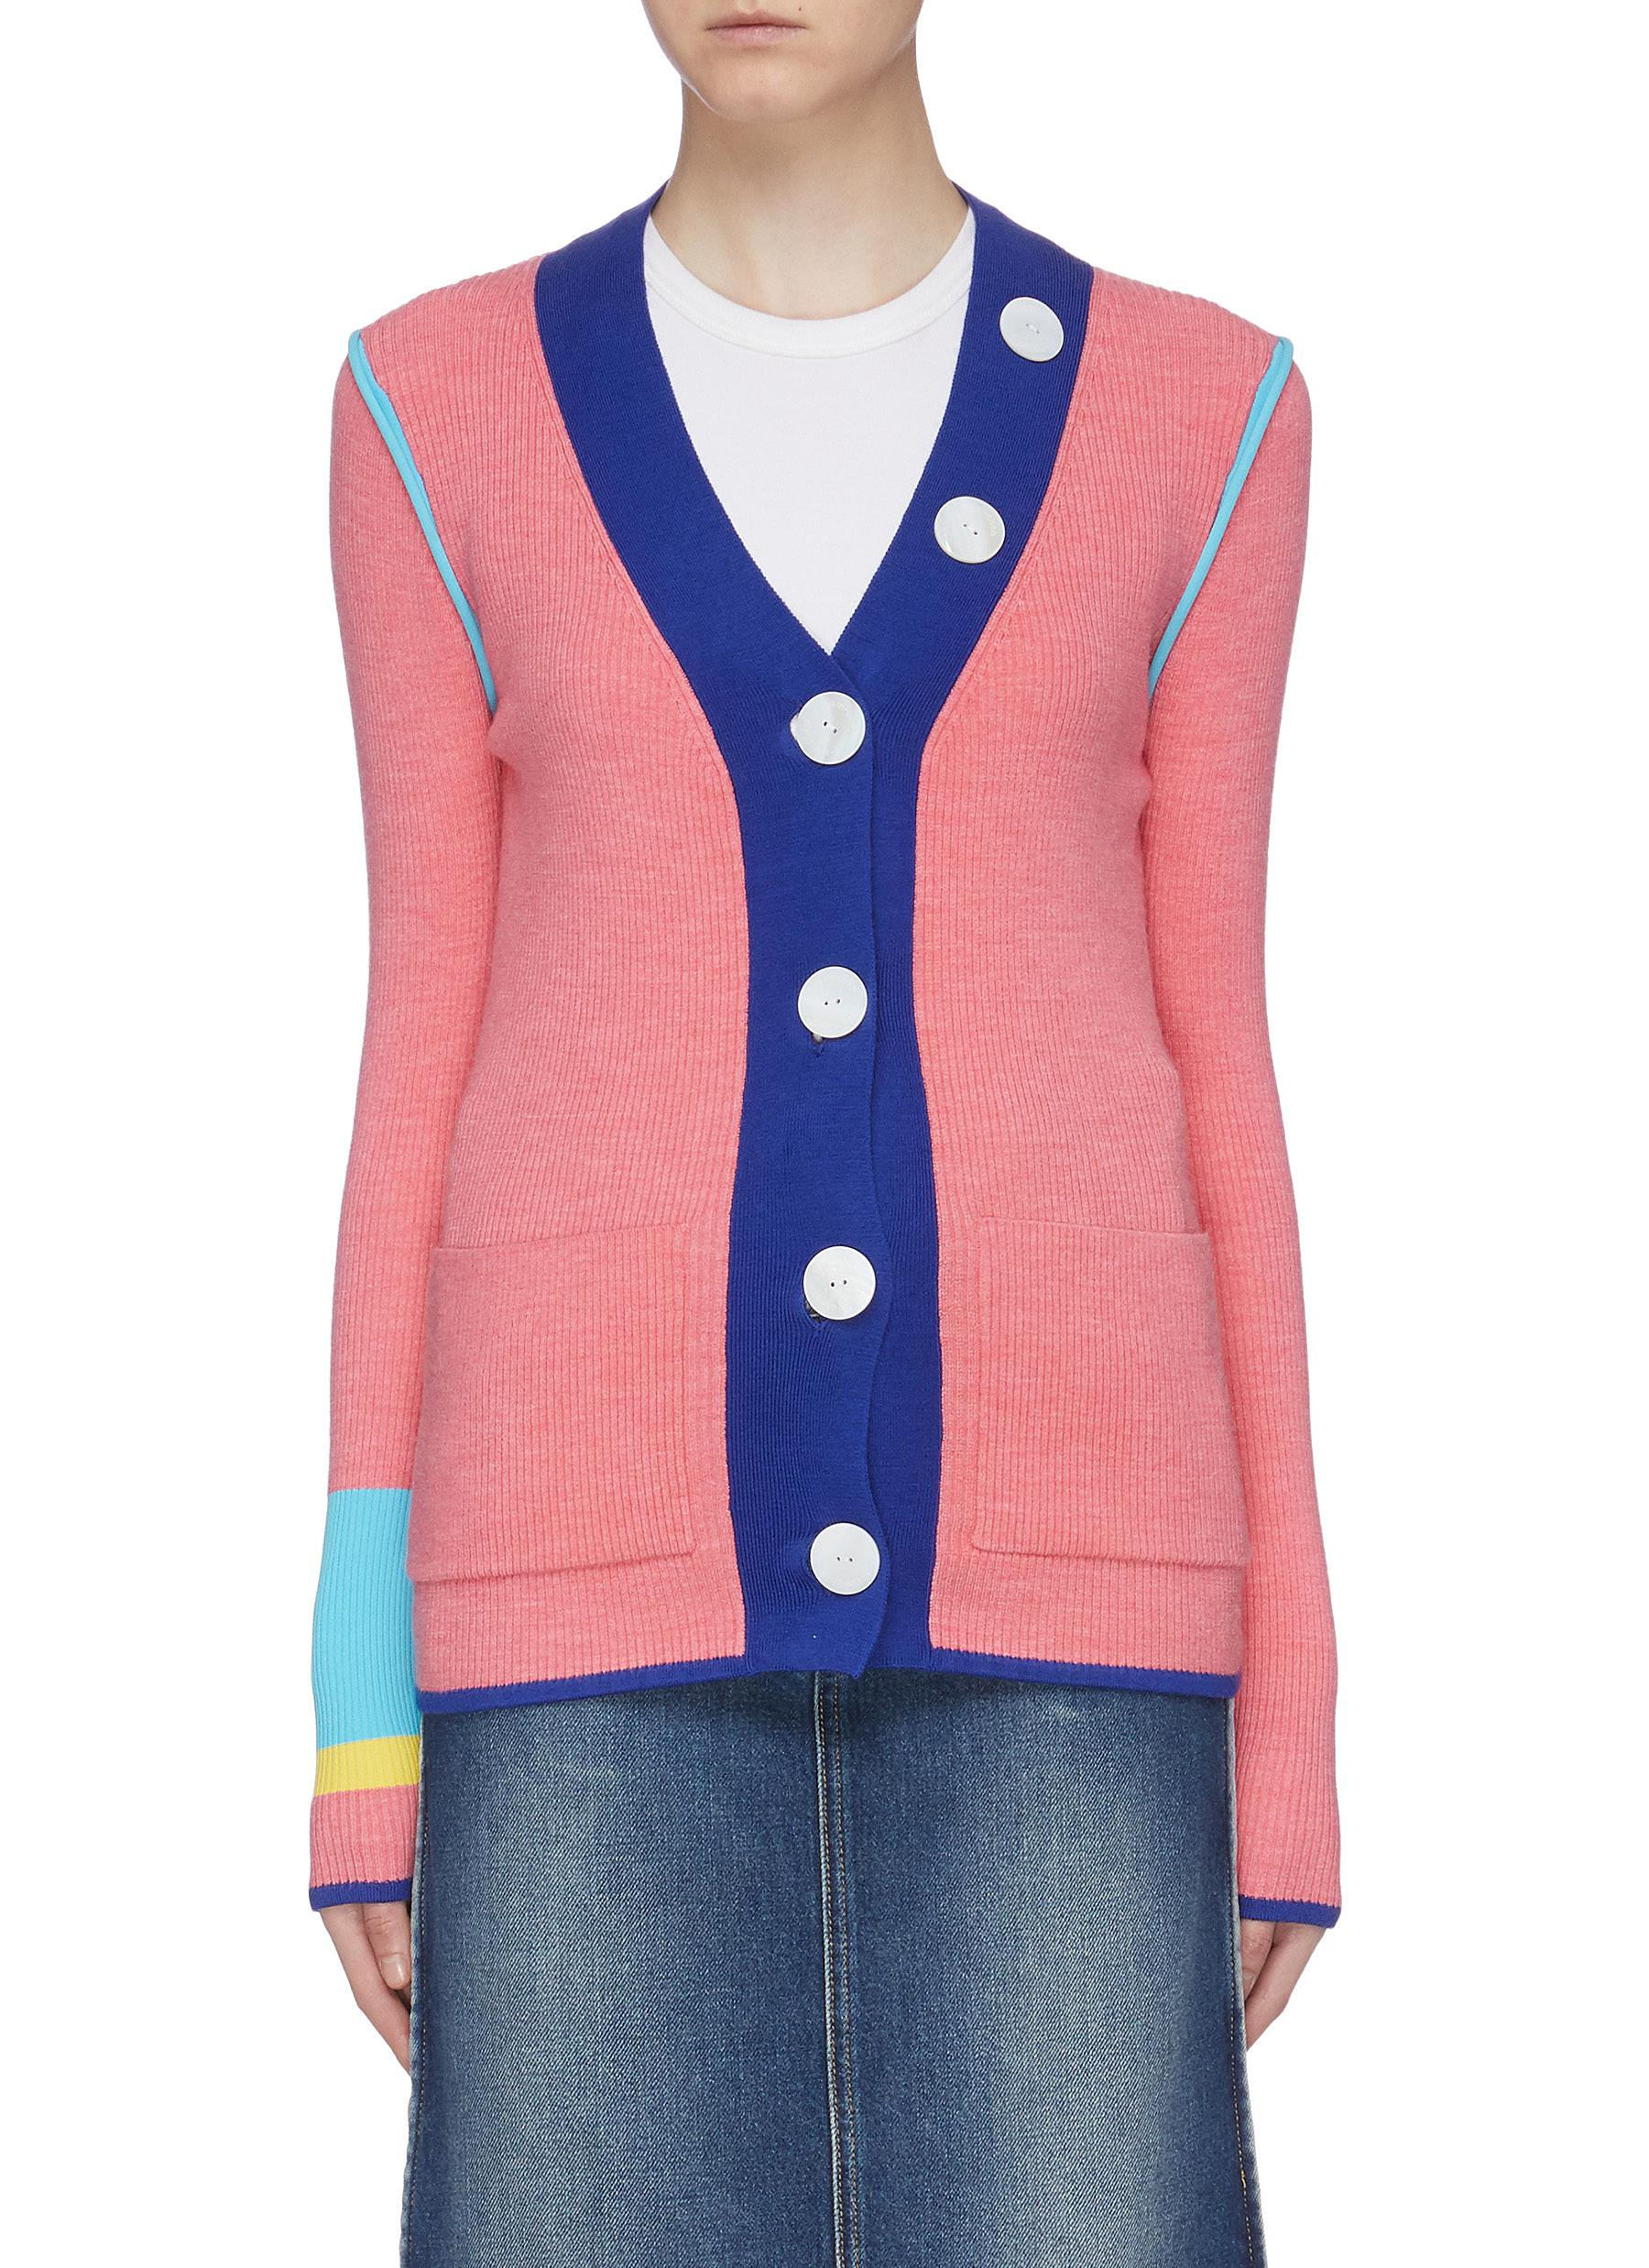 Contrast cuff rib knit cardigan by I-Am-Chen